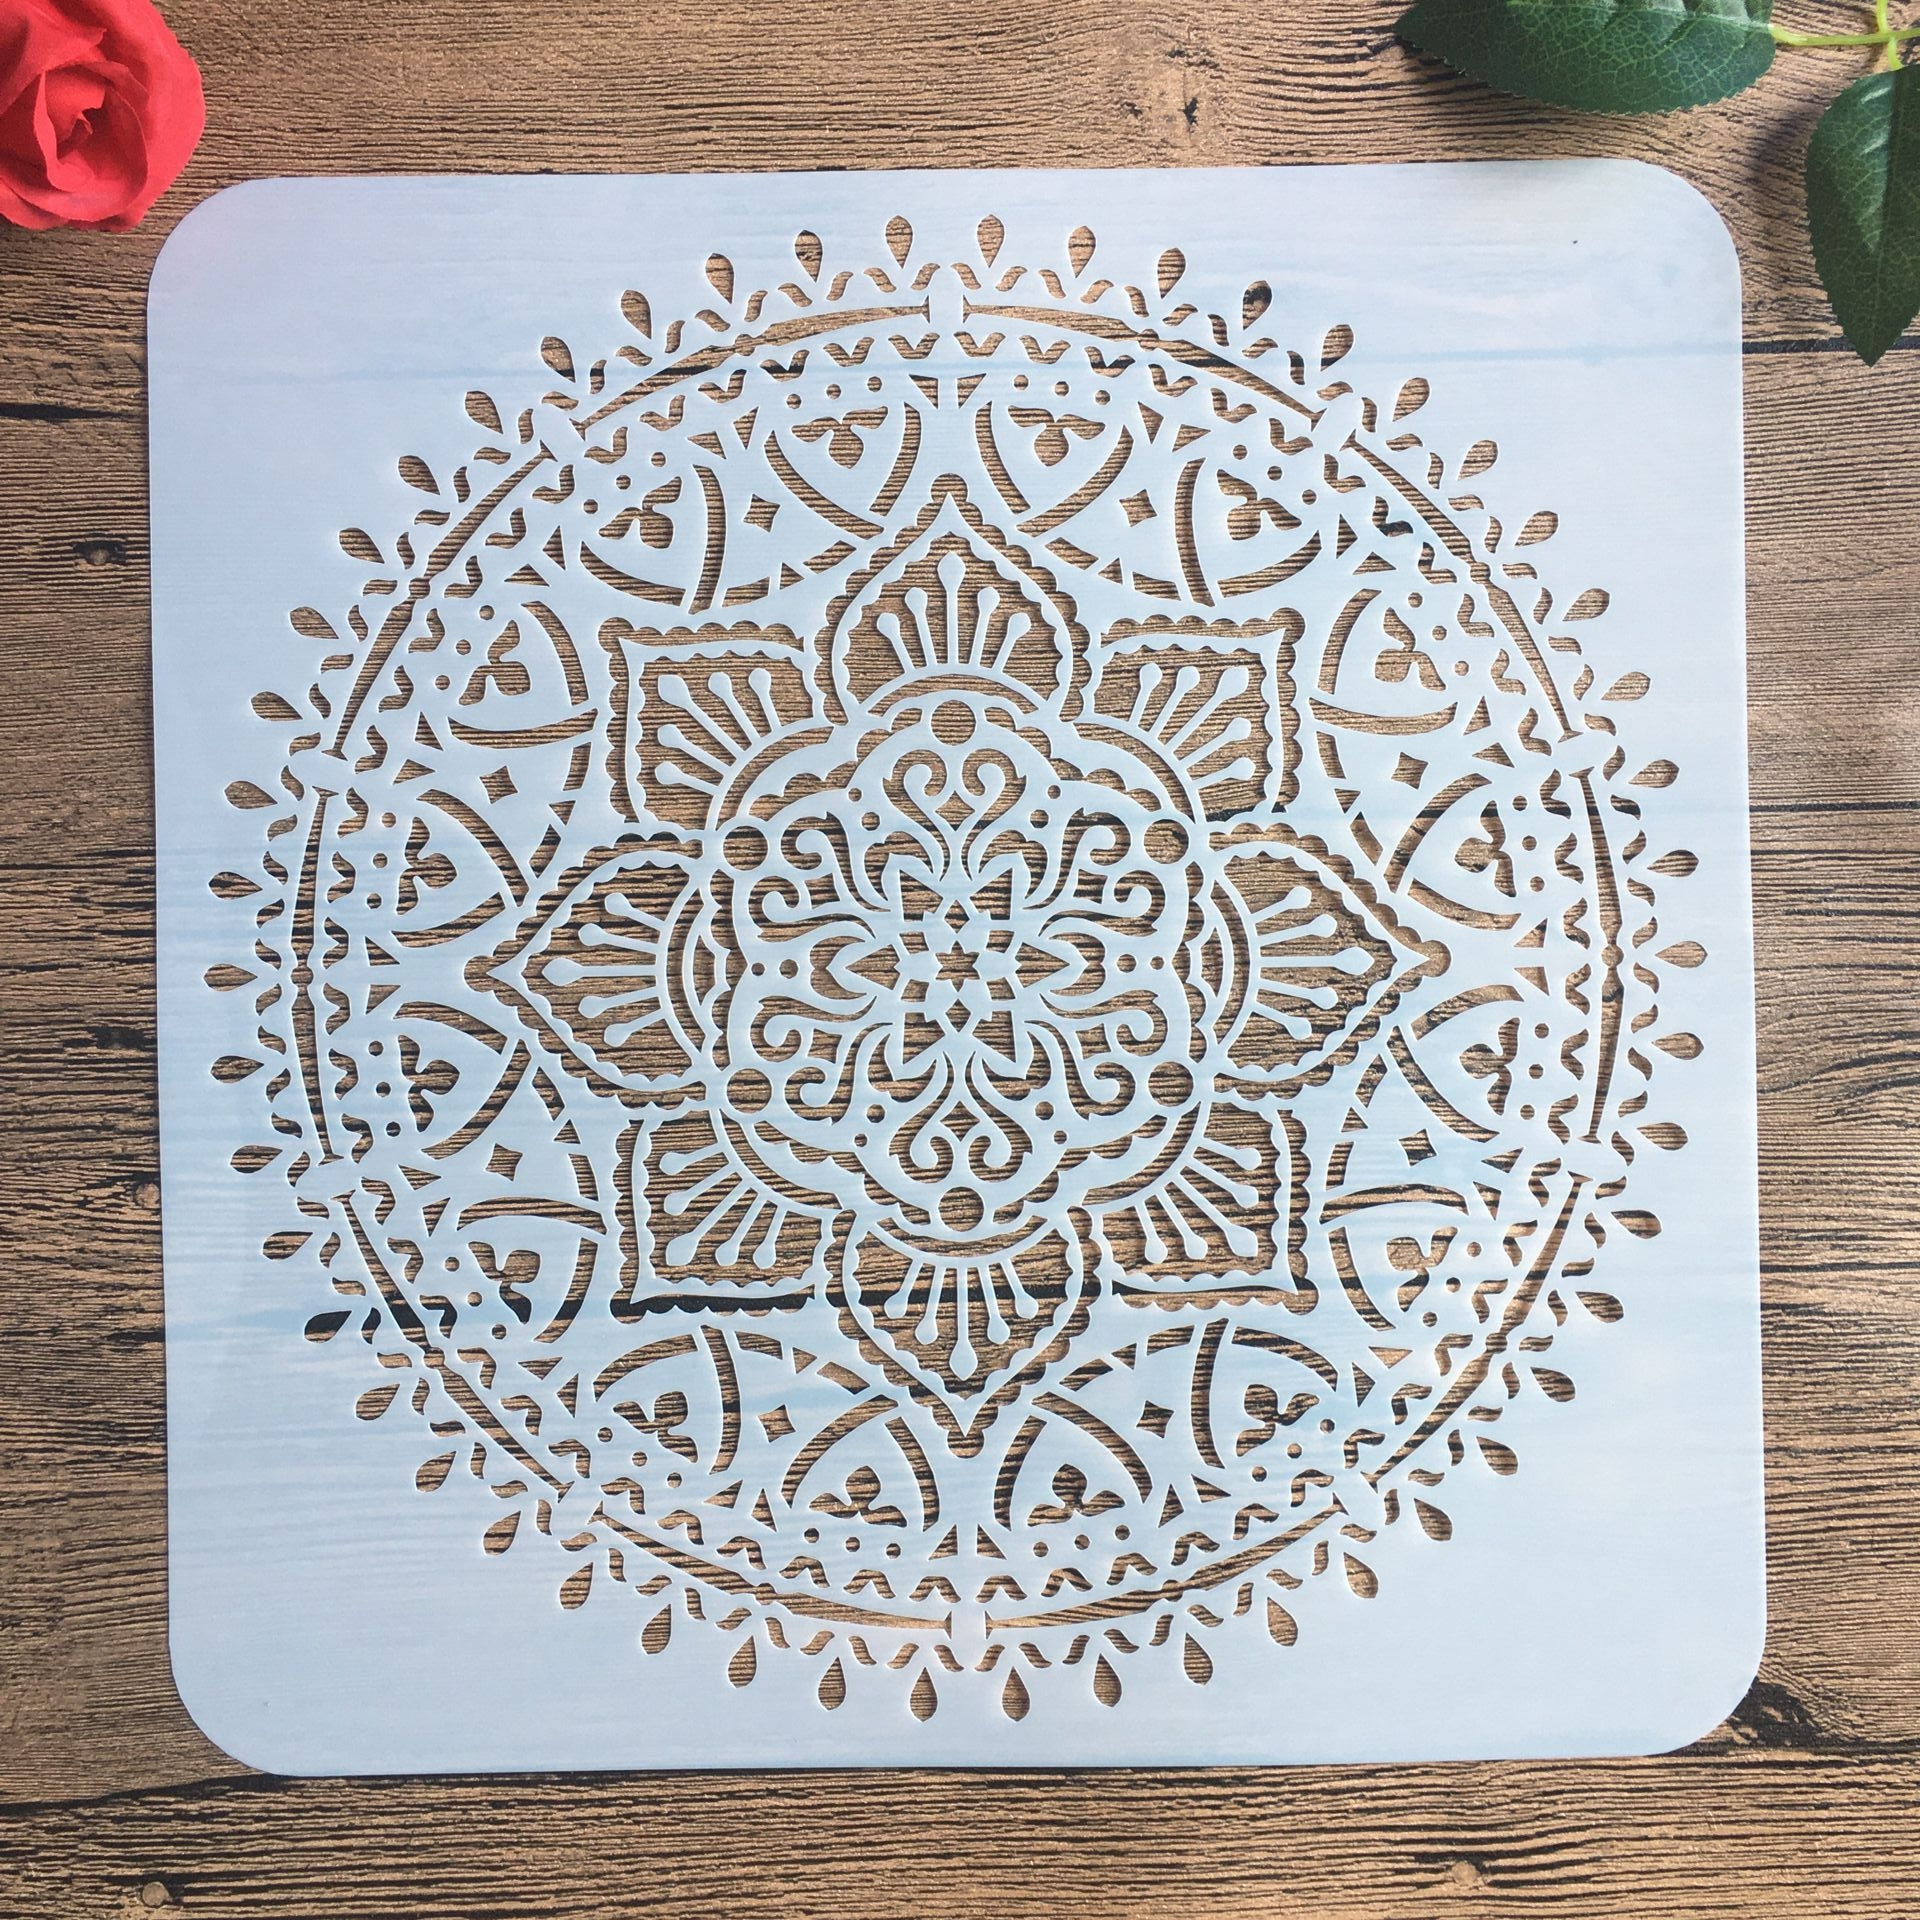 30 * 30 Cm Large Round Flower Mandala Diy Stencil Painting Scrapbook Coloring Engraving Album Decoration Template Stencil -e